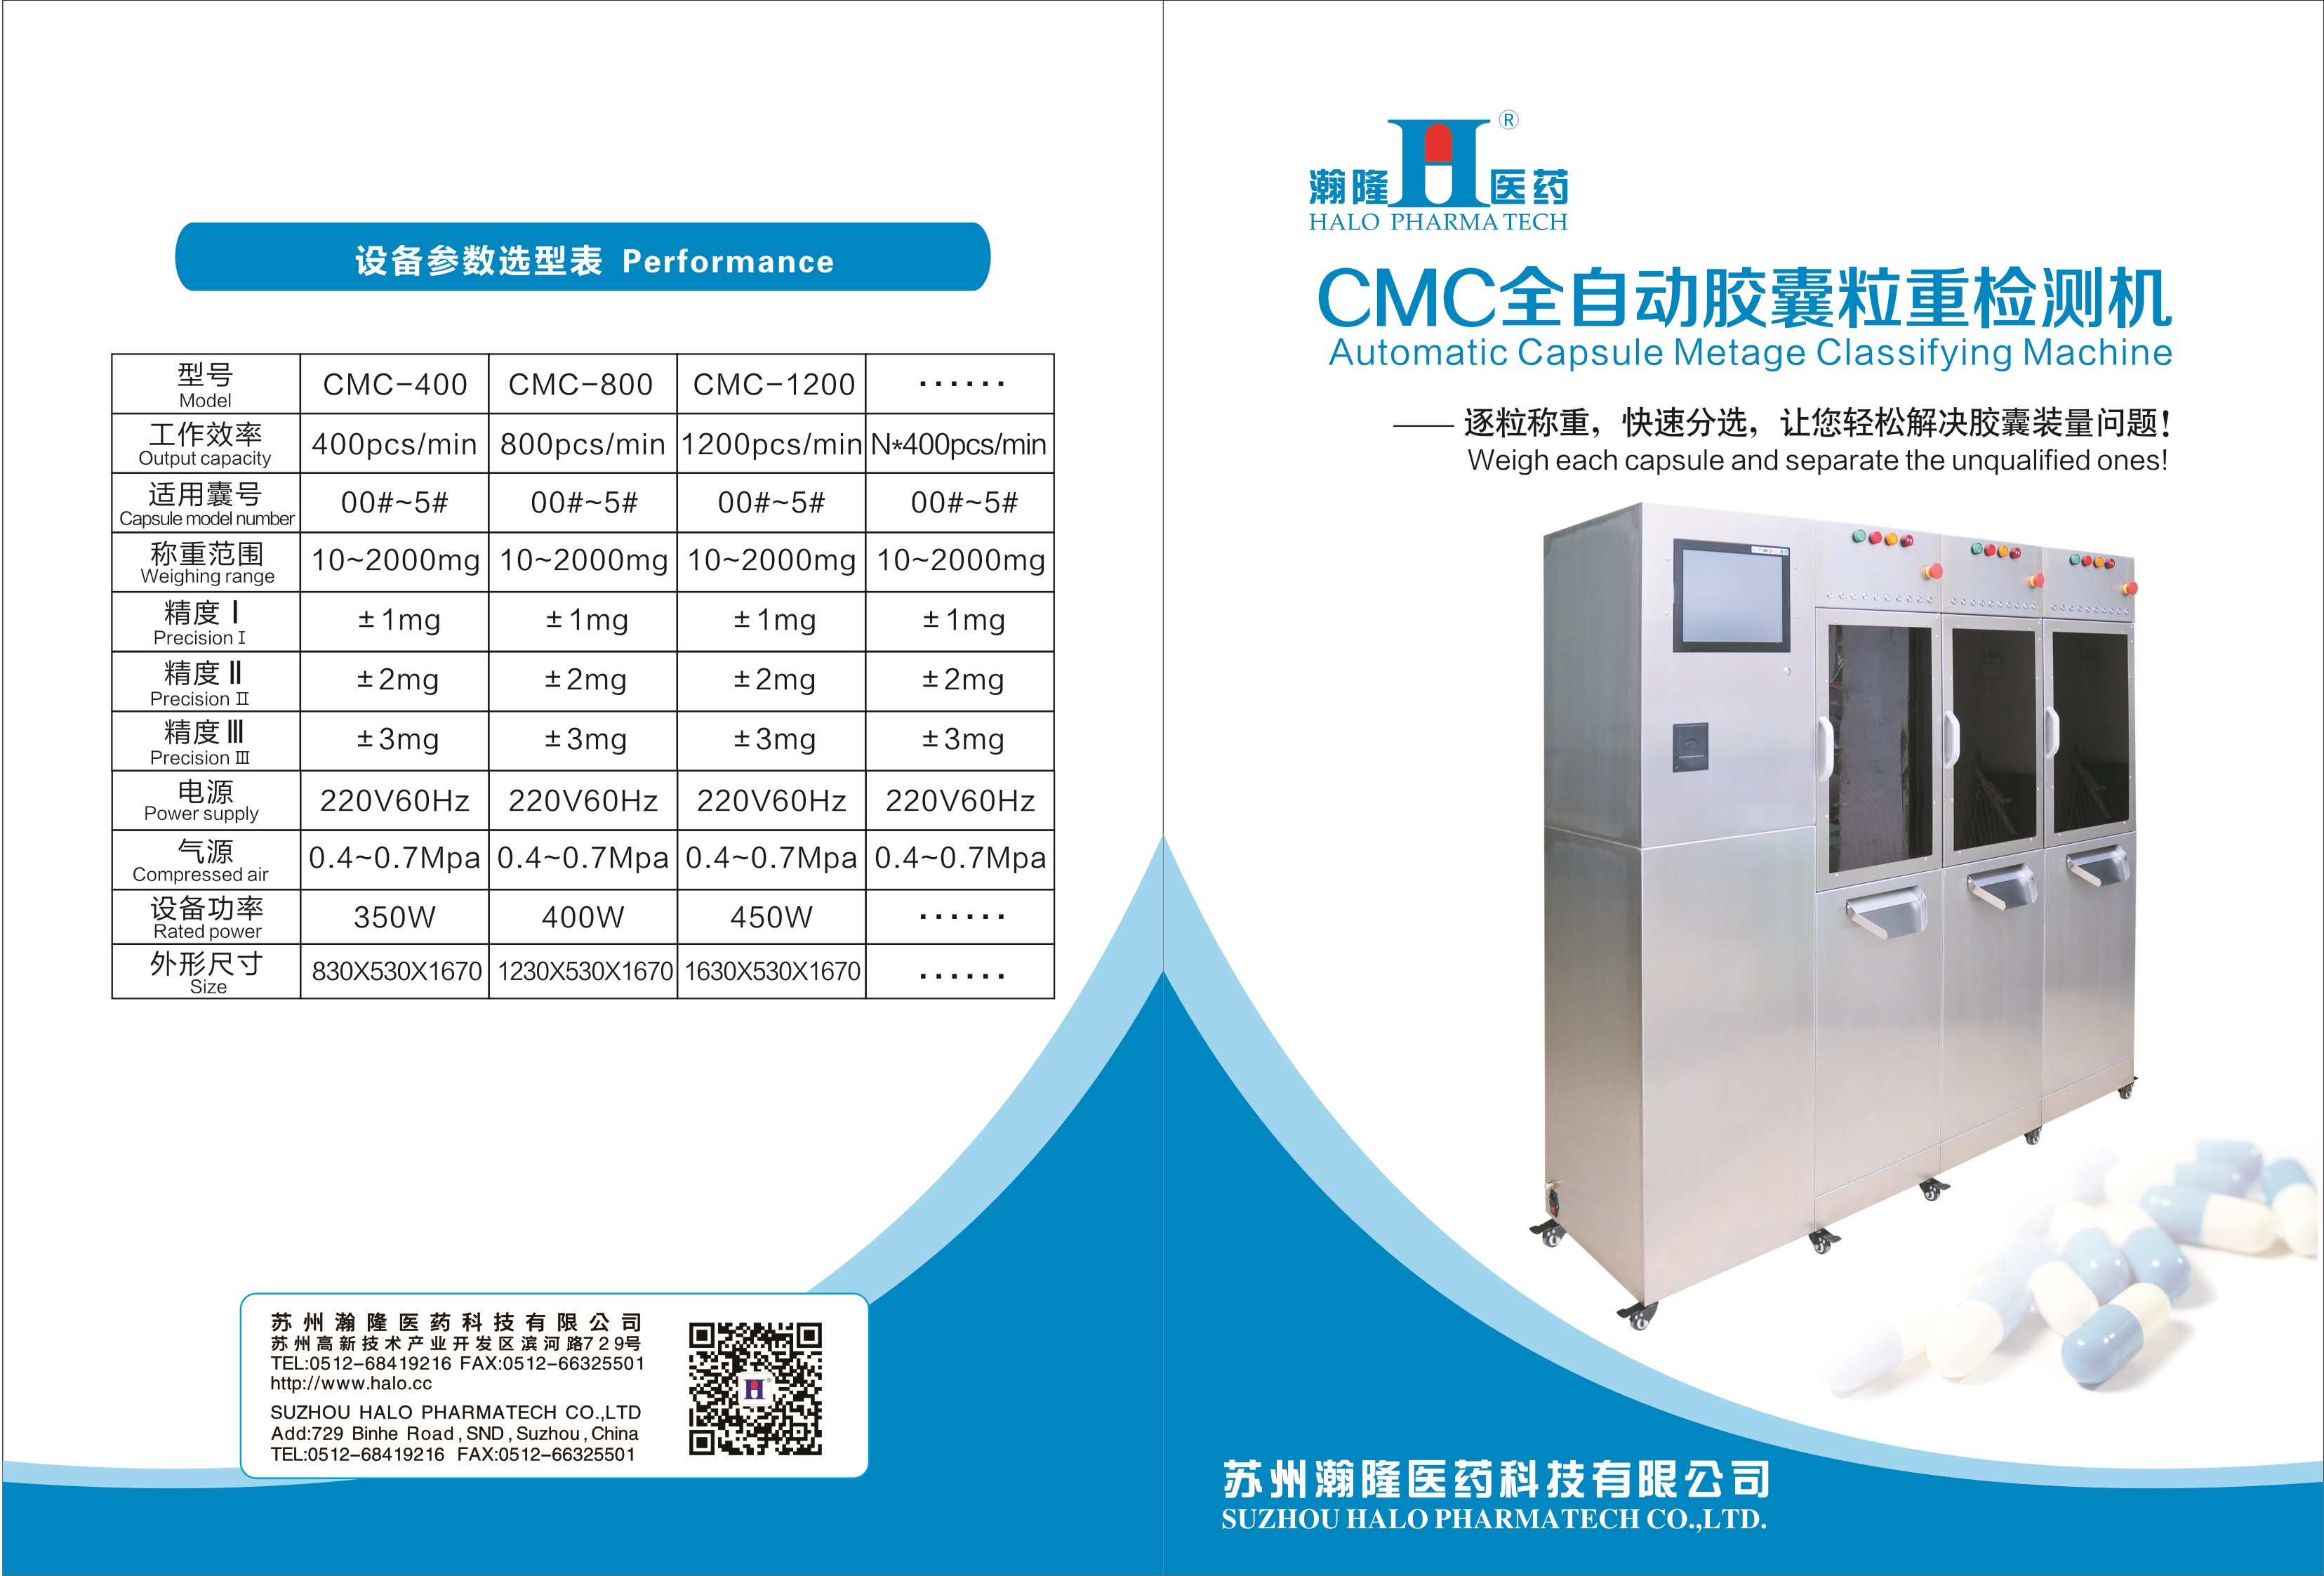 Automatic Capsule Metage Classifying Machine